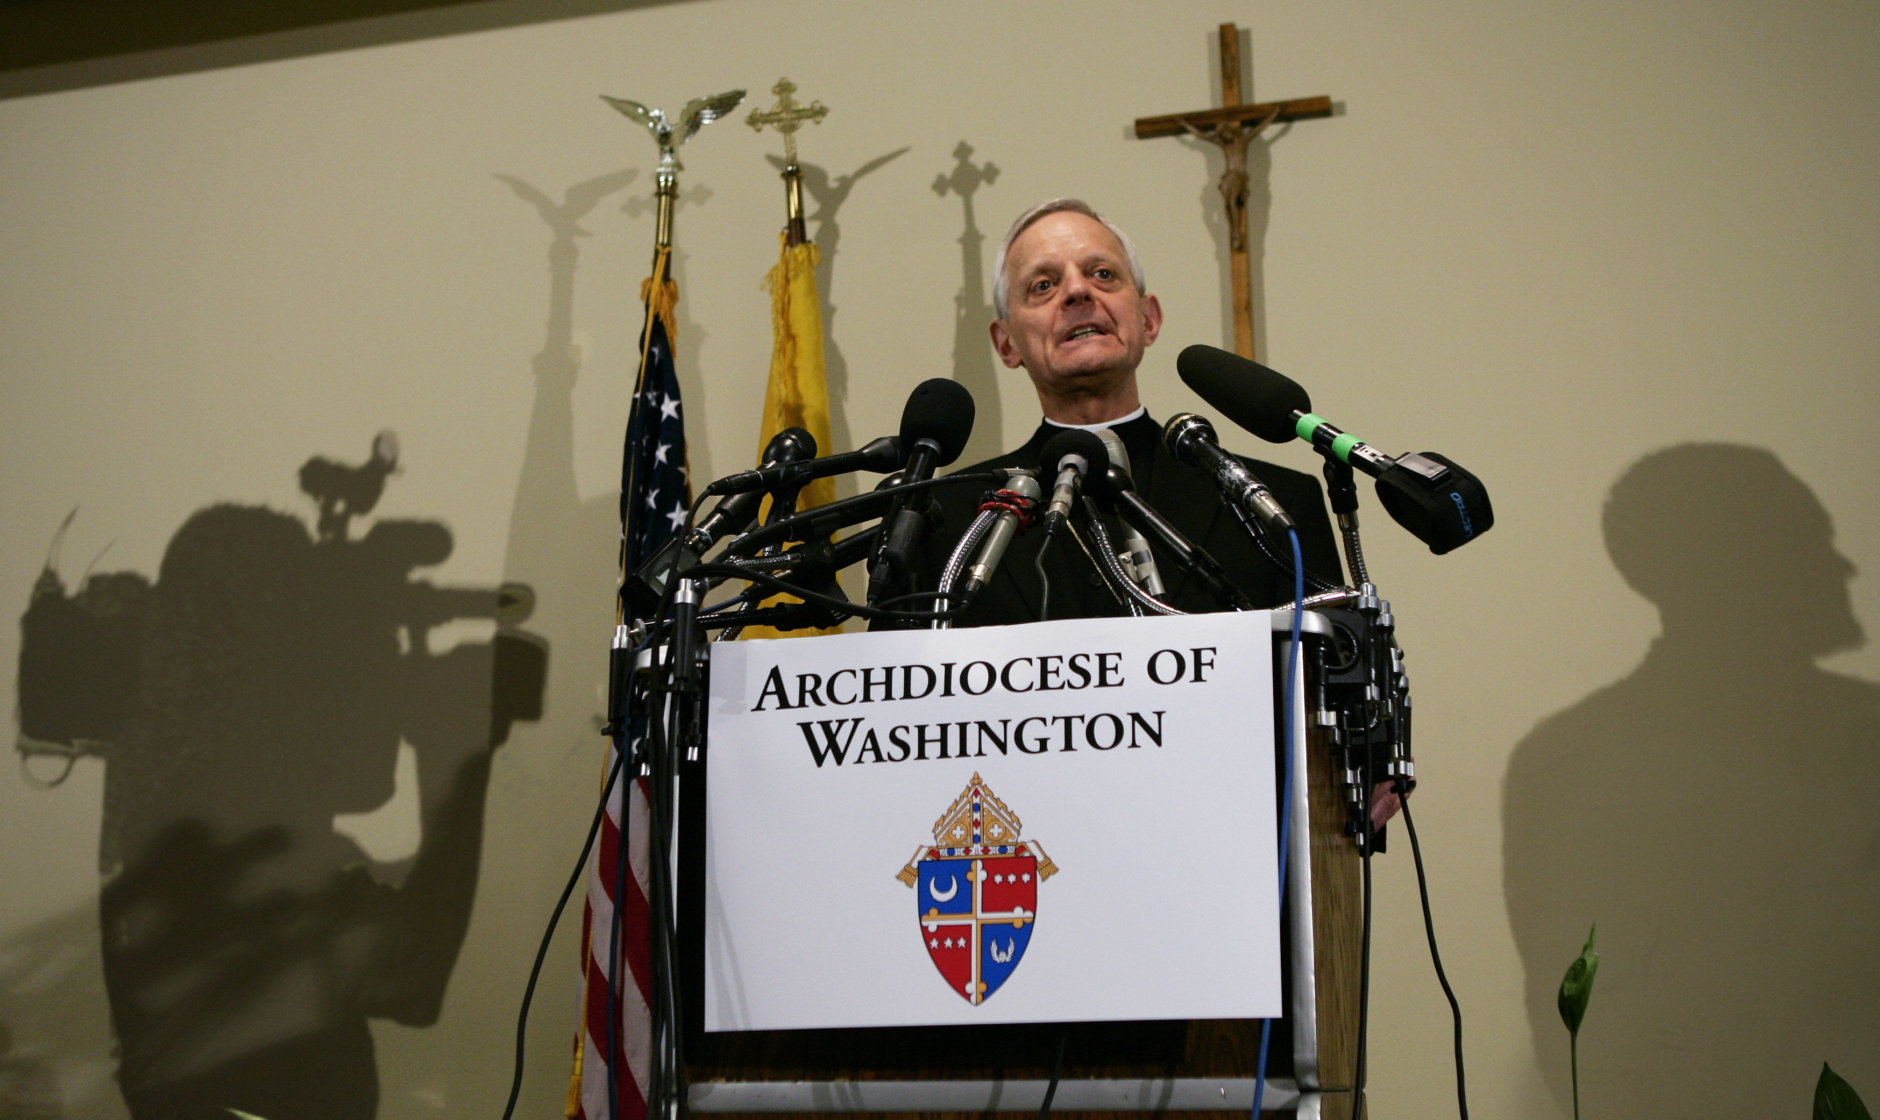 Pittsburgh Bishop Donald Wuerl, named by Pope Benedict XVI to become the next archbishop of Washington, speaks at an introductory press conference at the Archdiocese of Washington, Tuesday, May 16, 2006. Wuerl, 65, will succeed Cardinal Theodore McCarrick, Washington's archbishop since 2001, who has resigned at age 75 in keeping with church law.  (AP Photo/J. Scott Applewhite)